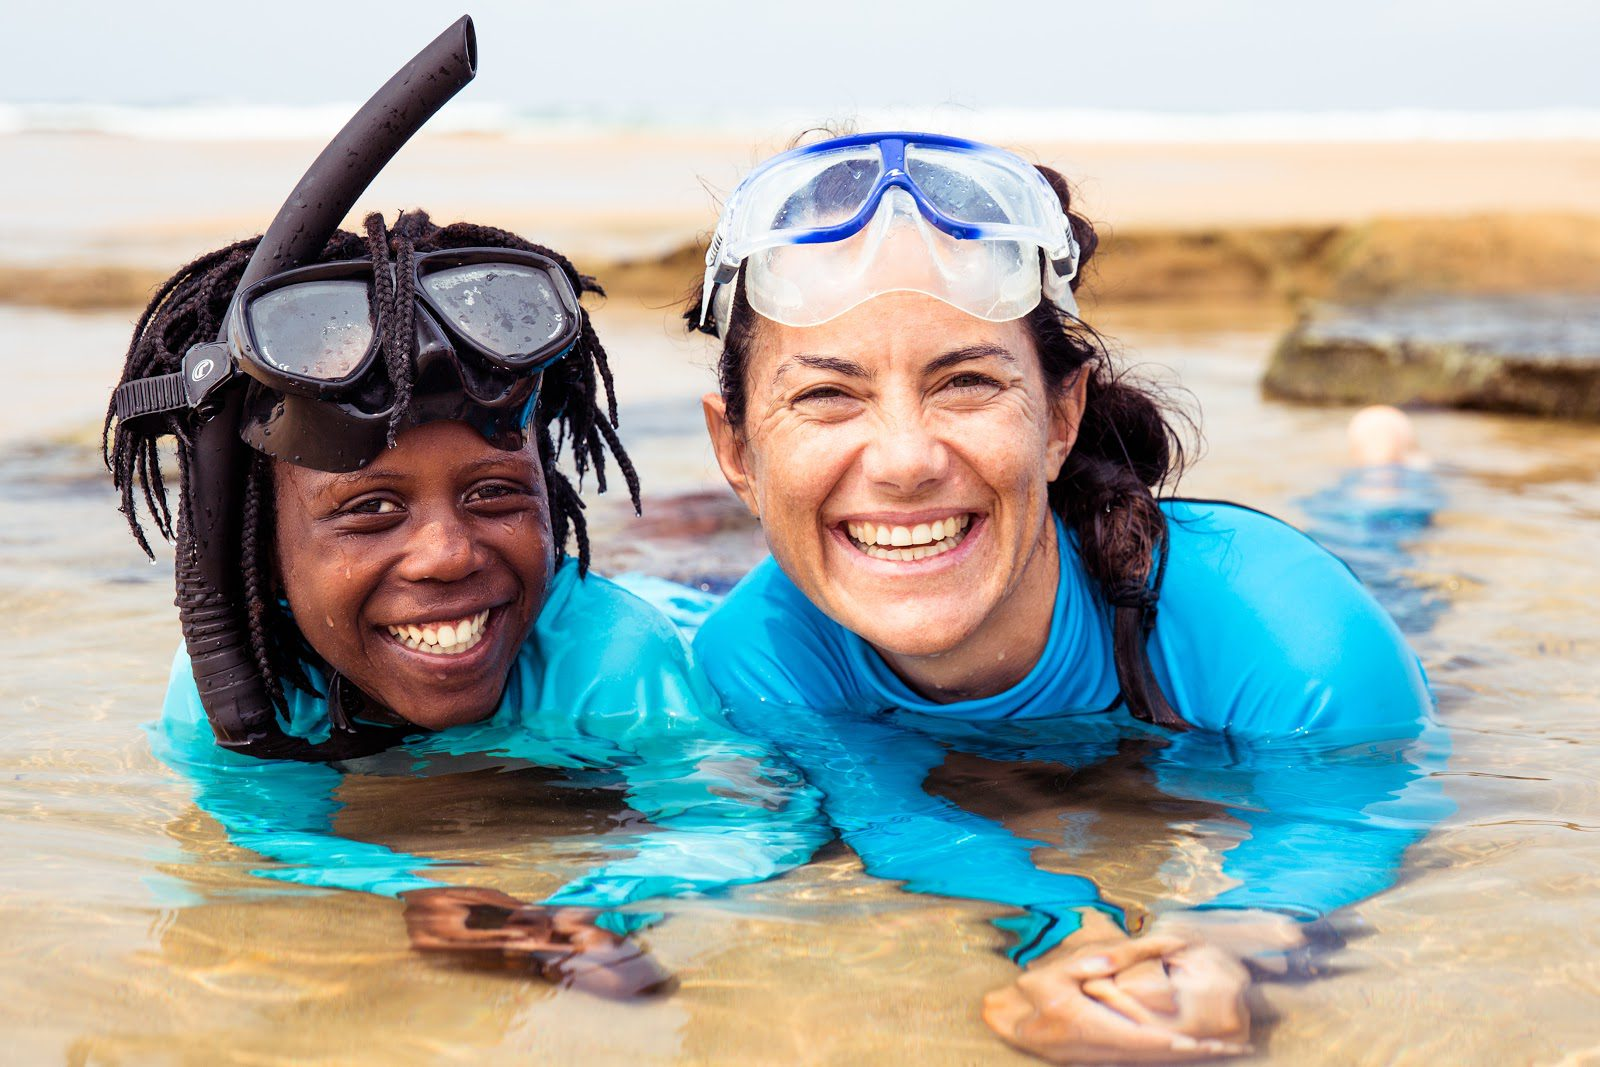 snorkeling on safari is Hanli and a young girl lay in shallow, sandy waters, wearing blue rash guards, googles, & a snorkel